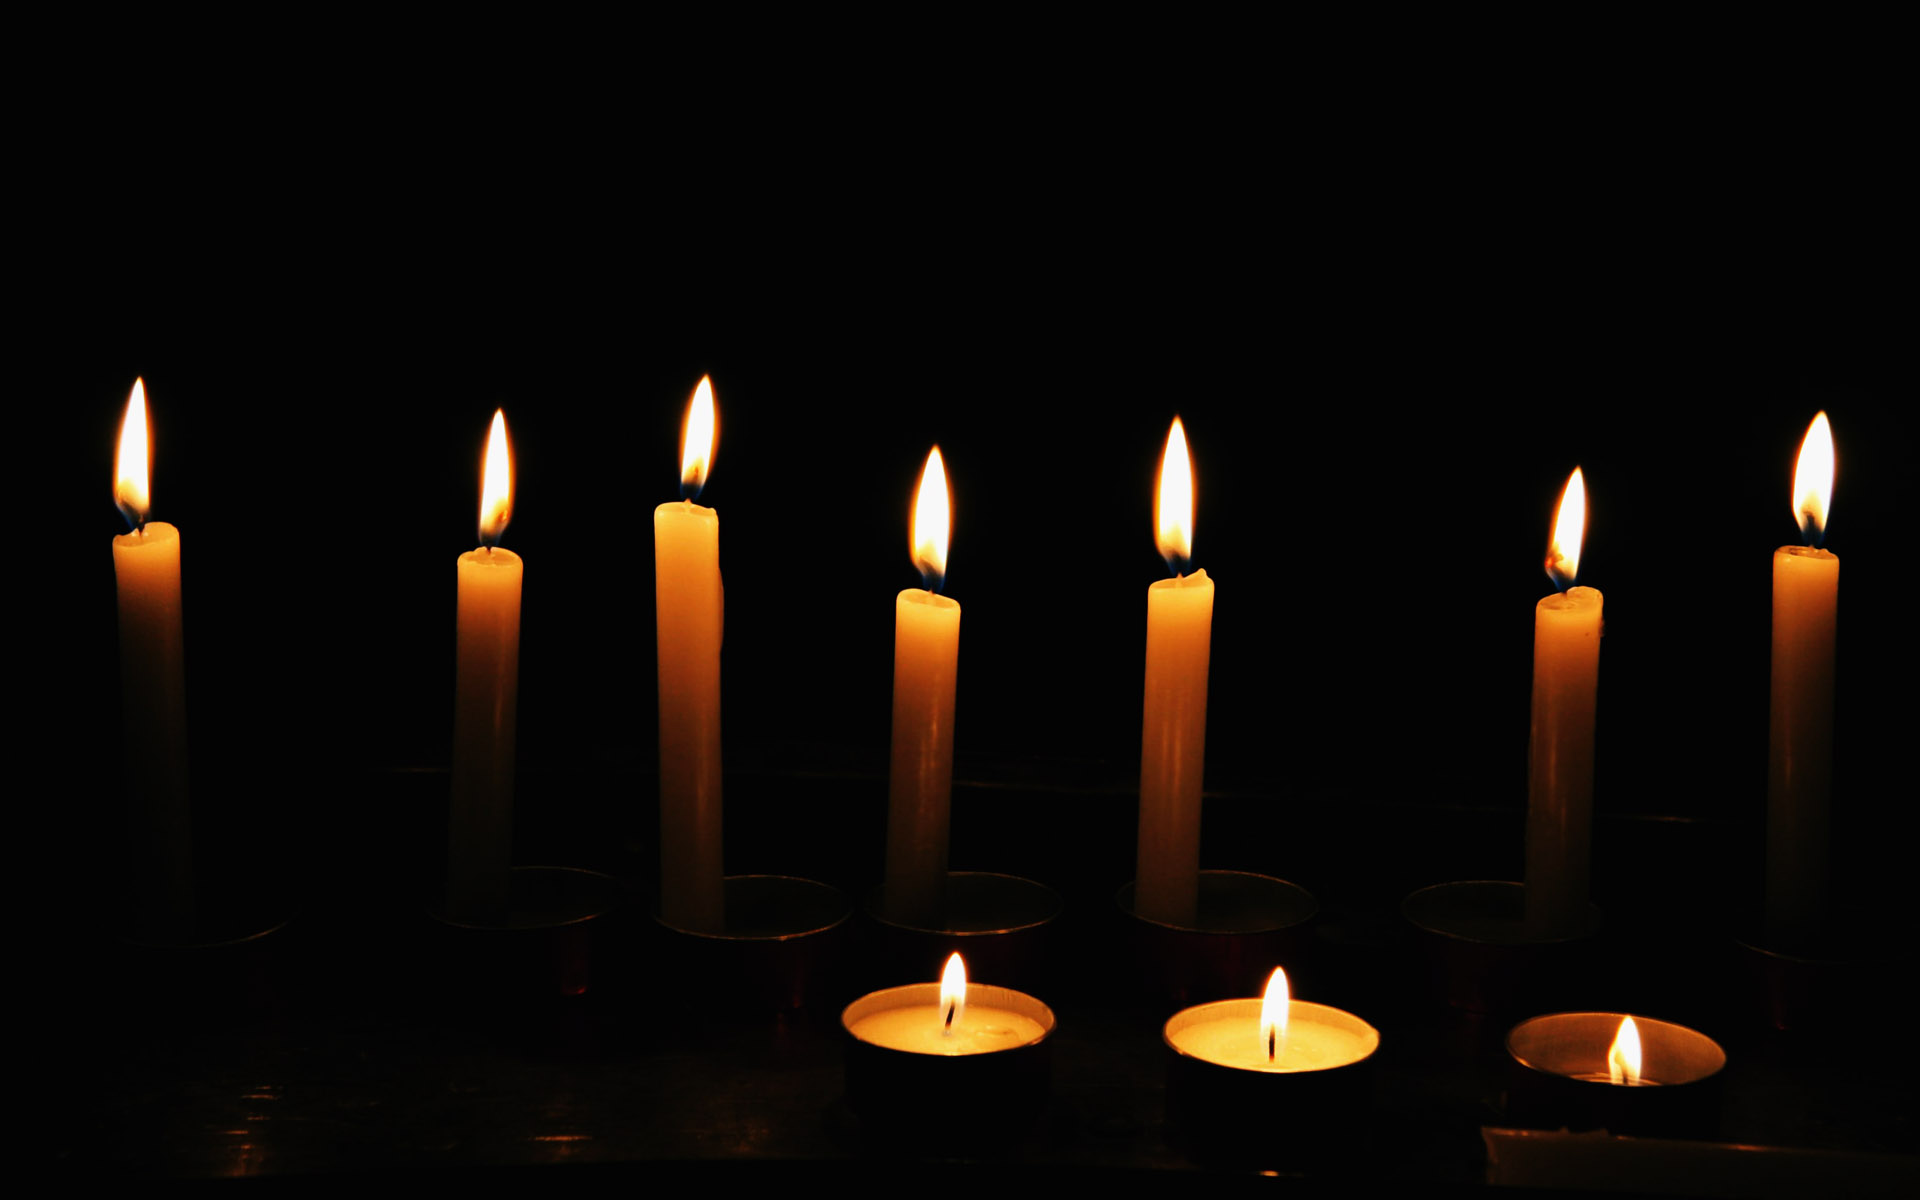 Candle wallpaper 9203